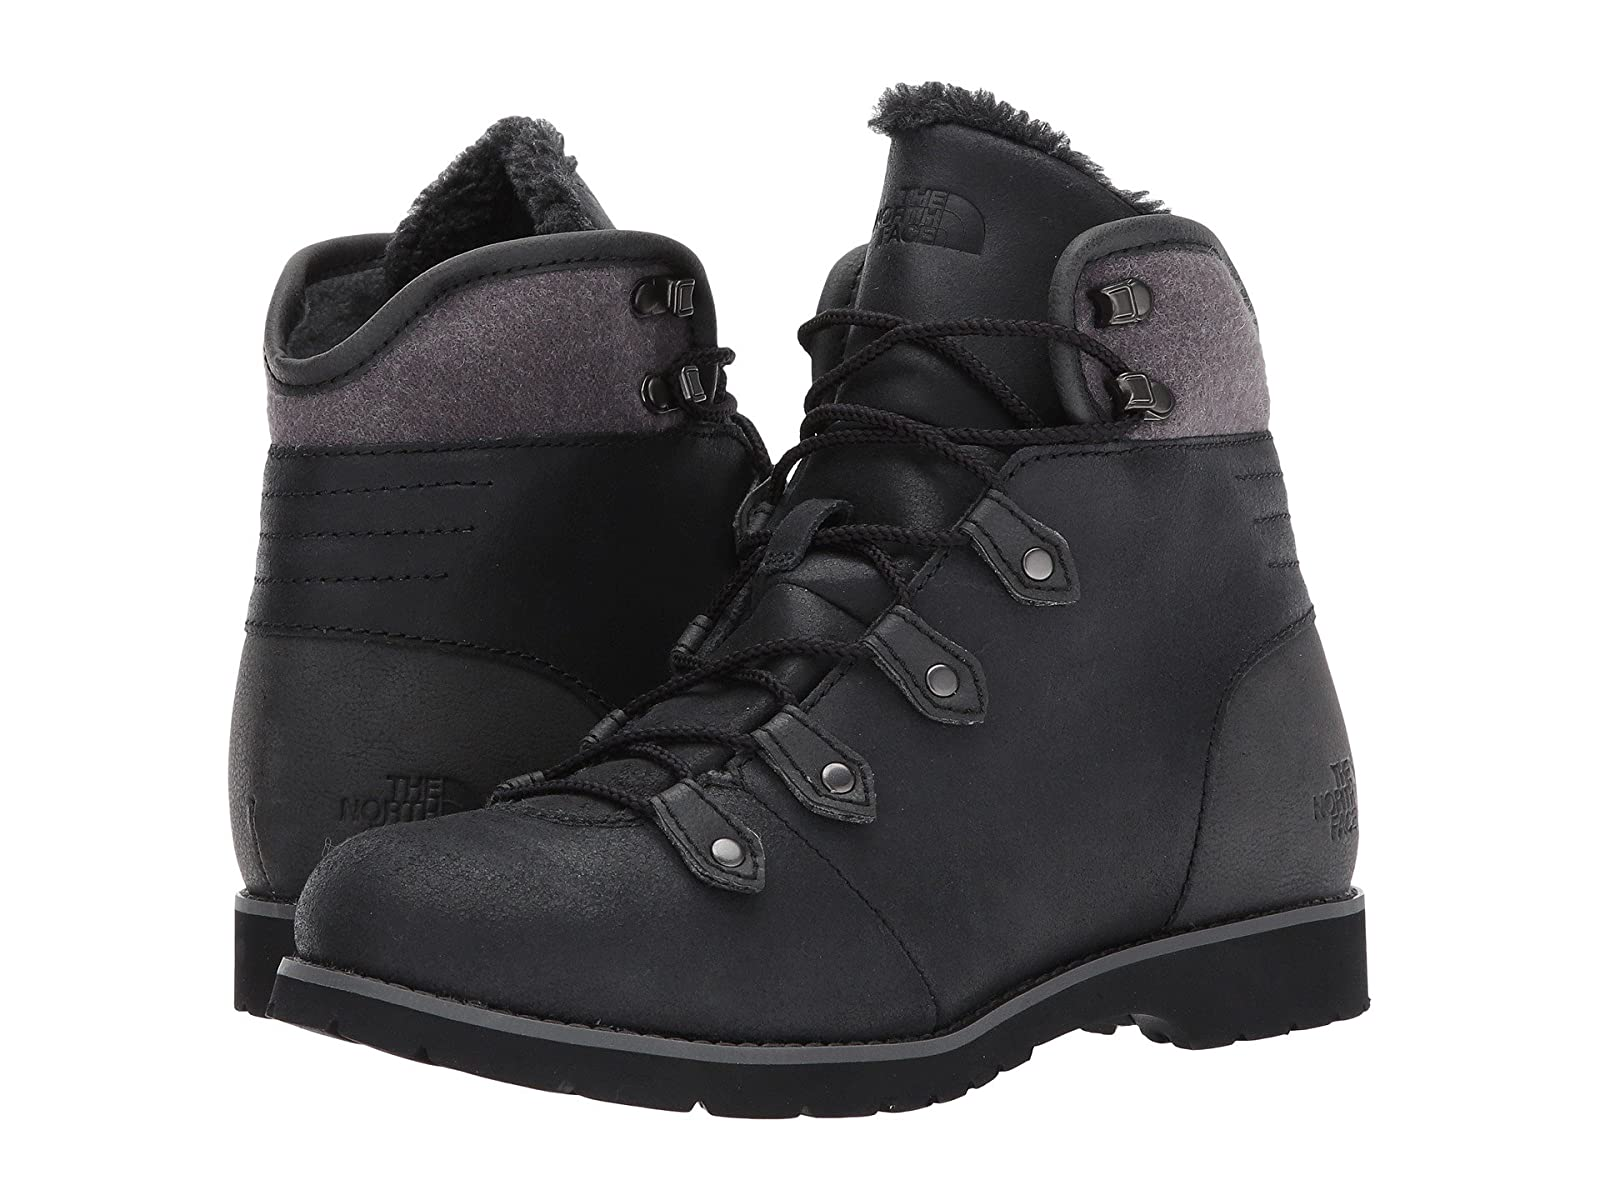 The North Face Ballard Boyfriend BootEconomical and quality shoes